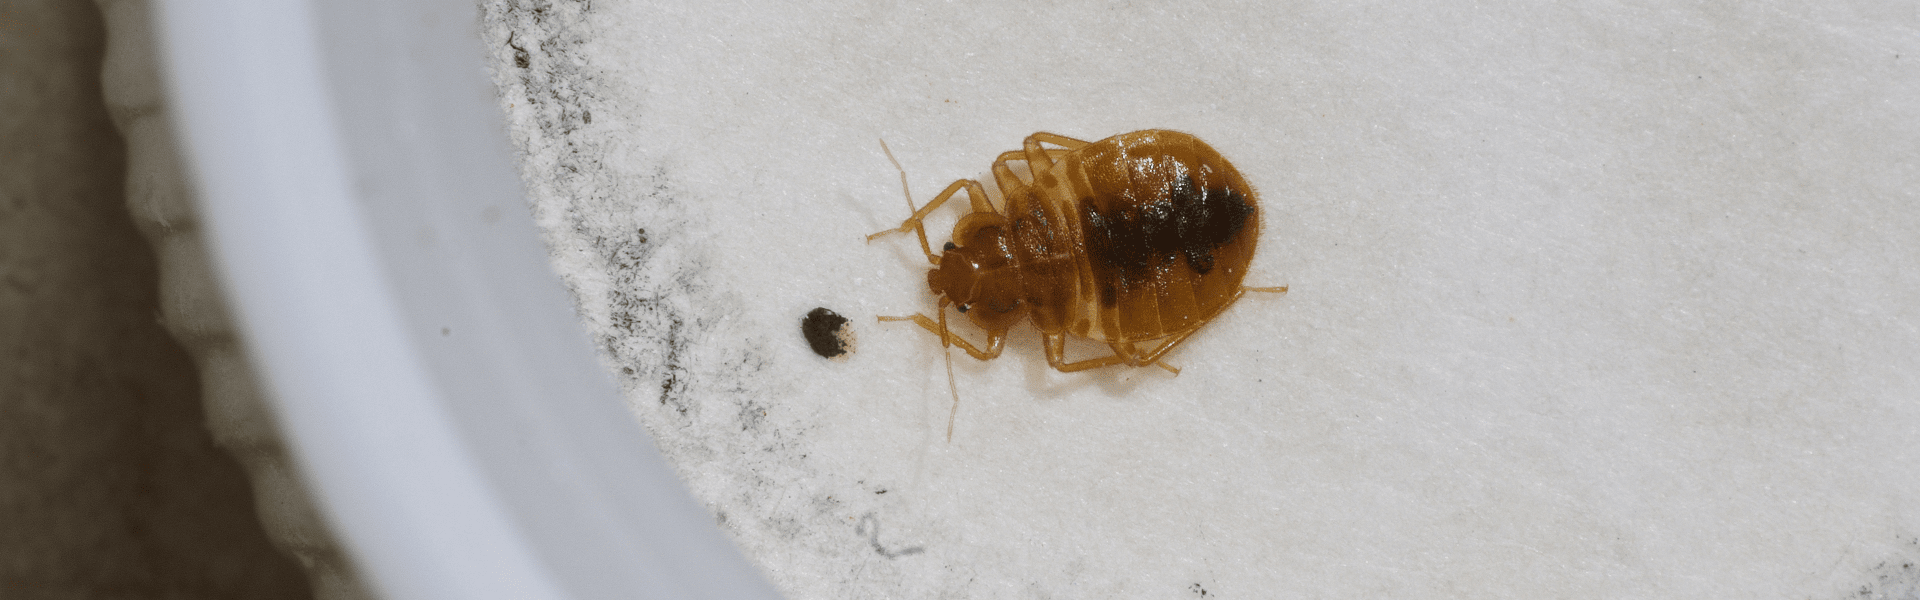 bed bug and fecal matter